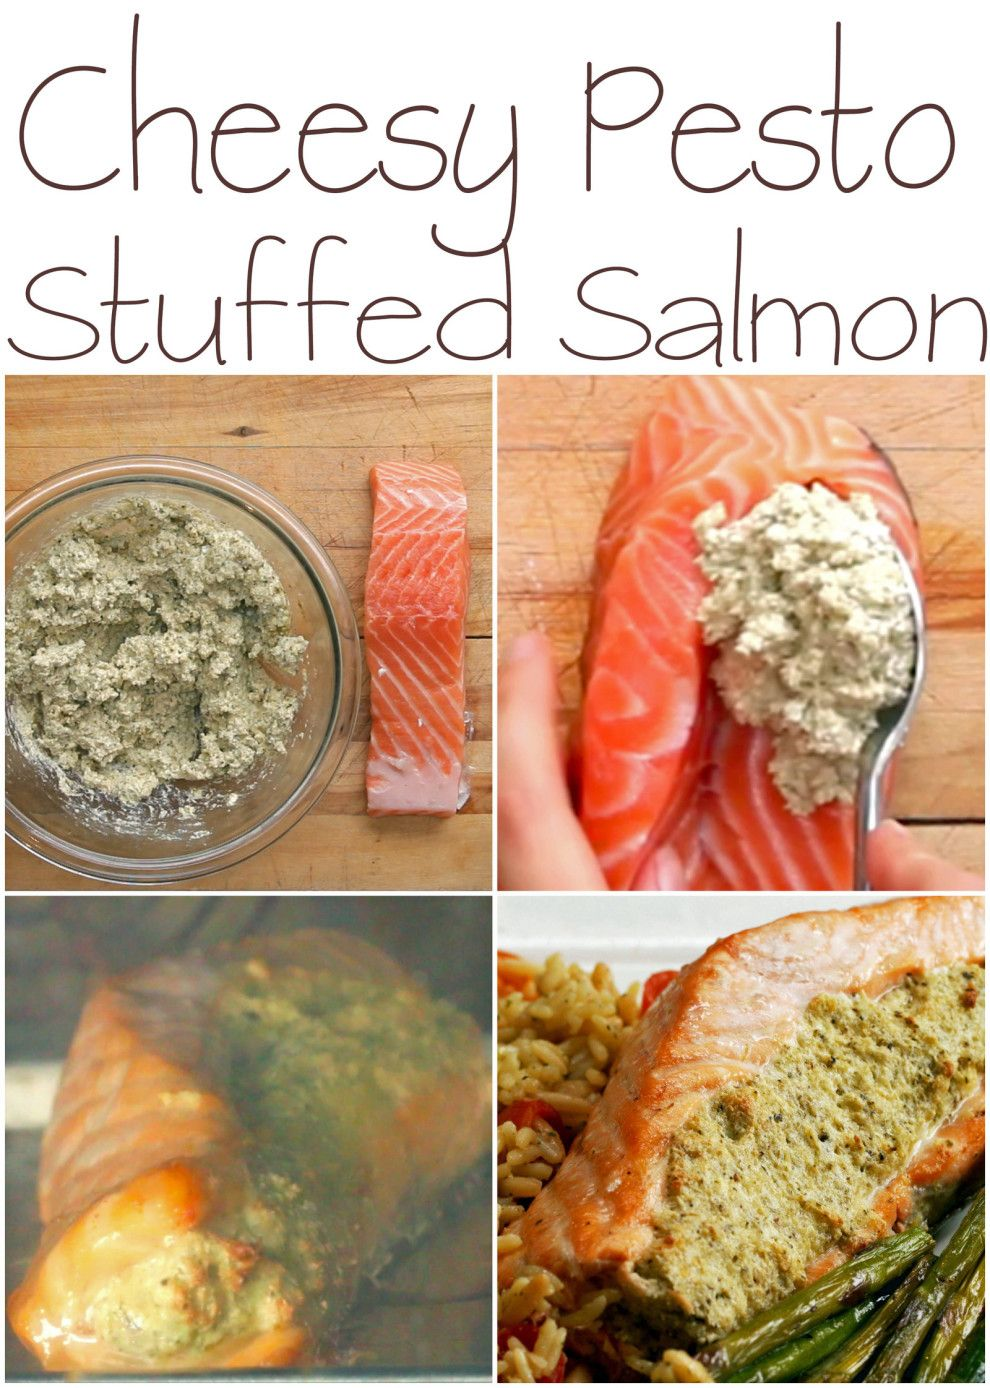 This Cheesy Pesto-Stuffed Salmon Is So Easy To Make For Dinner